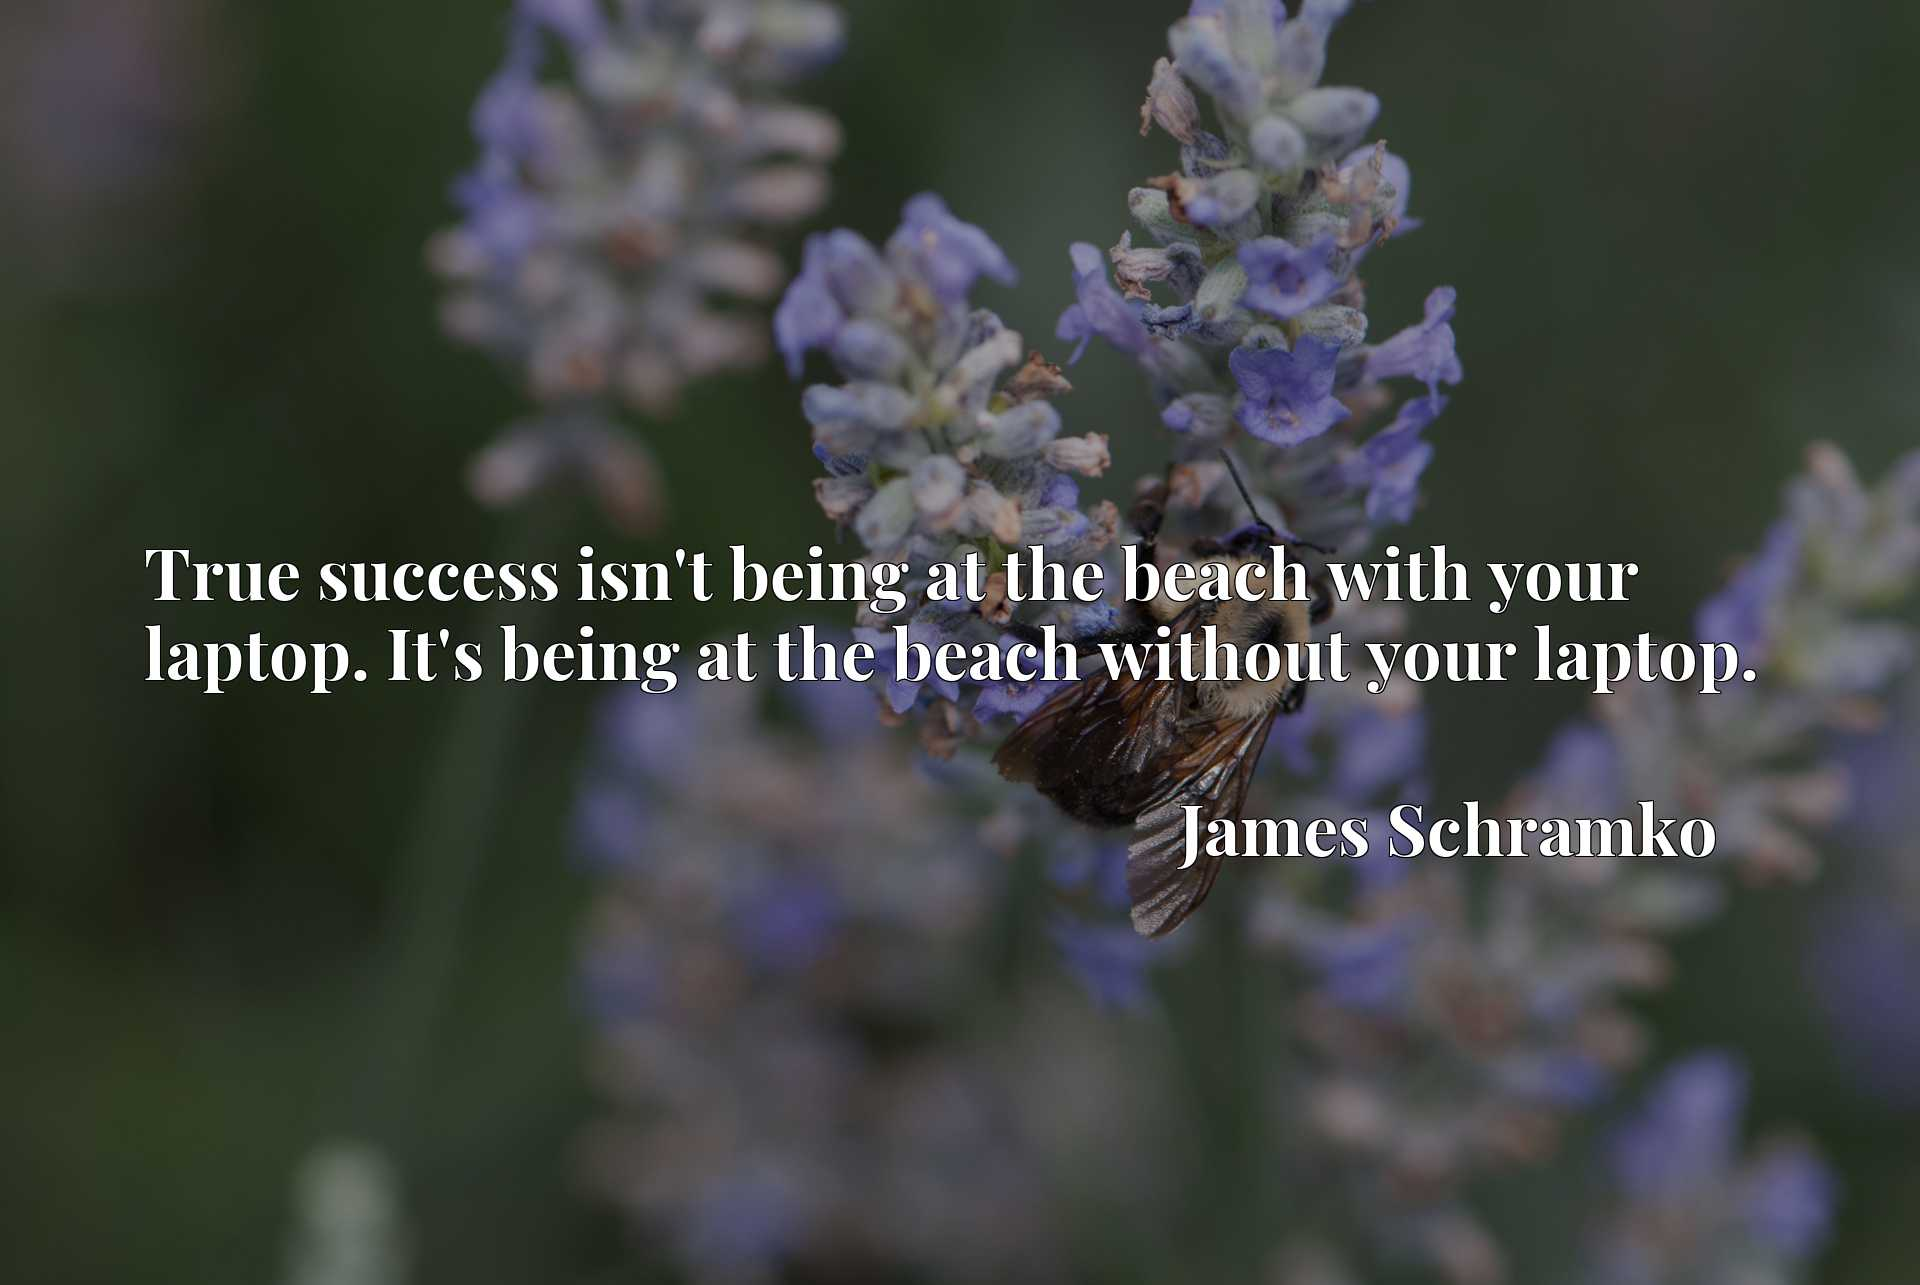 True success isn't being at the beach with your laptop. It's being at the beach without your laptop.